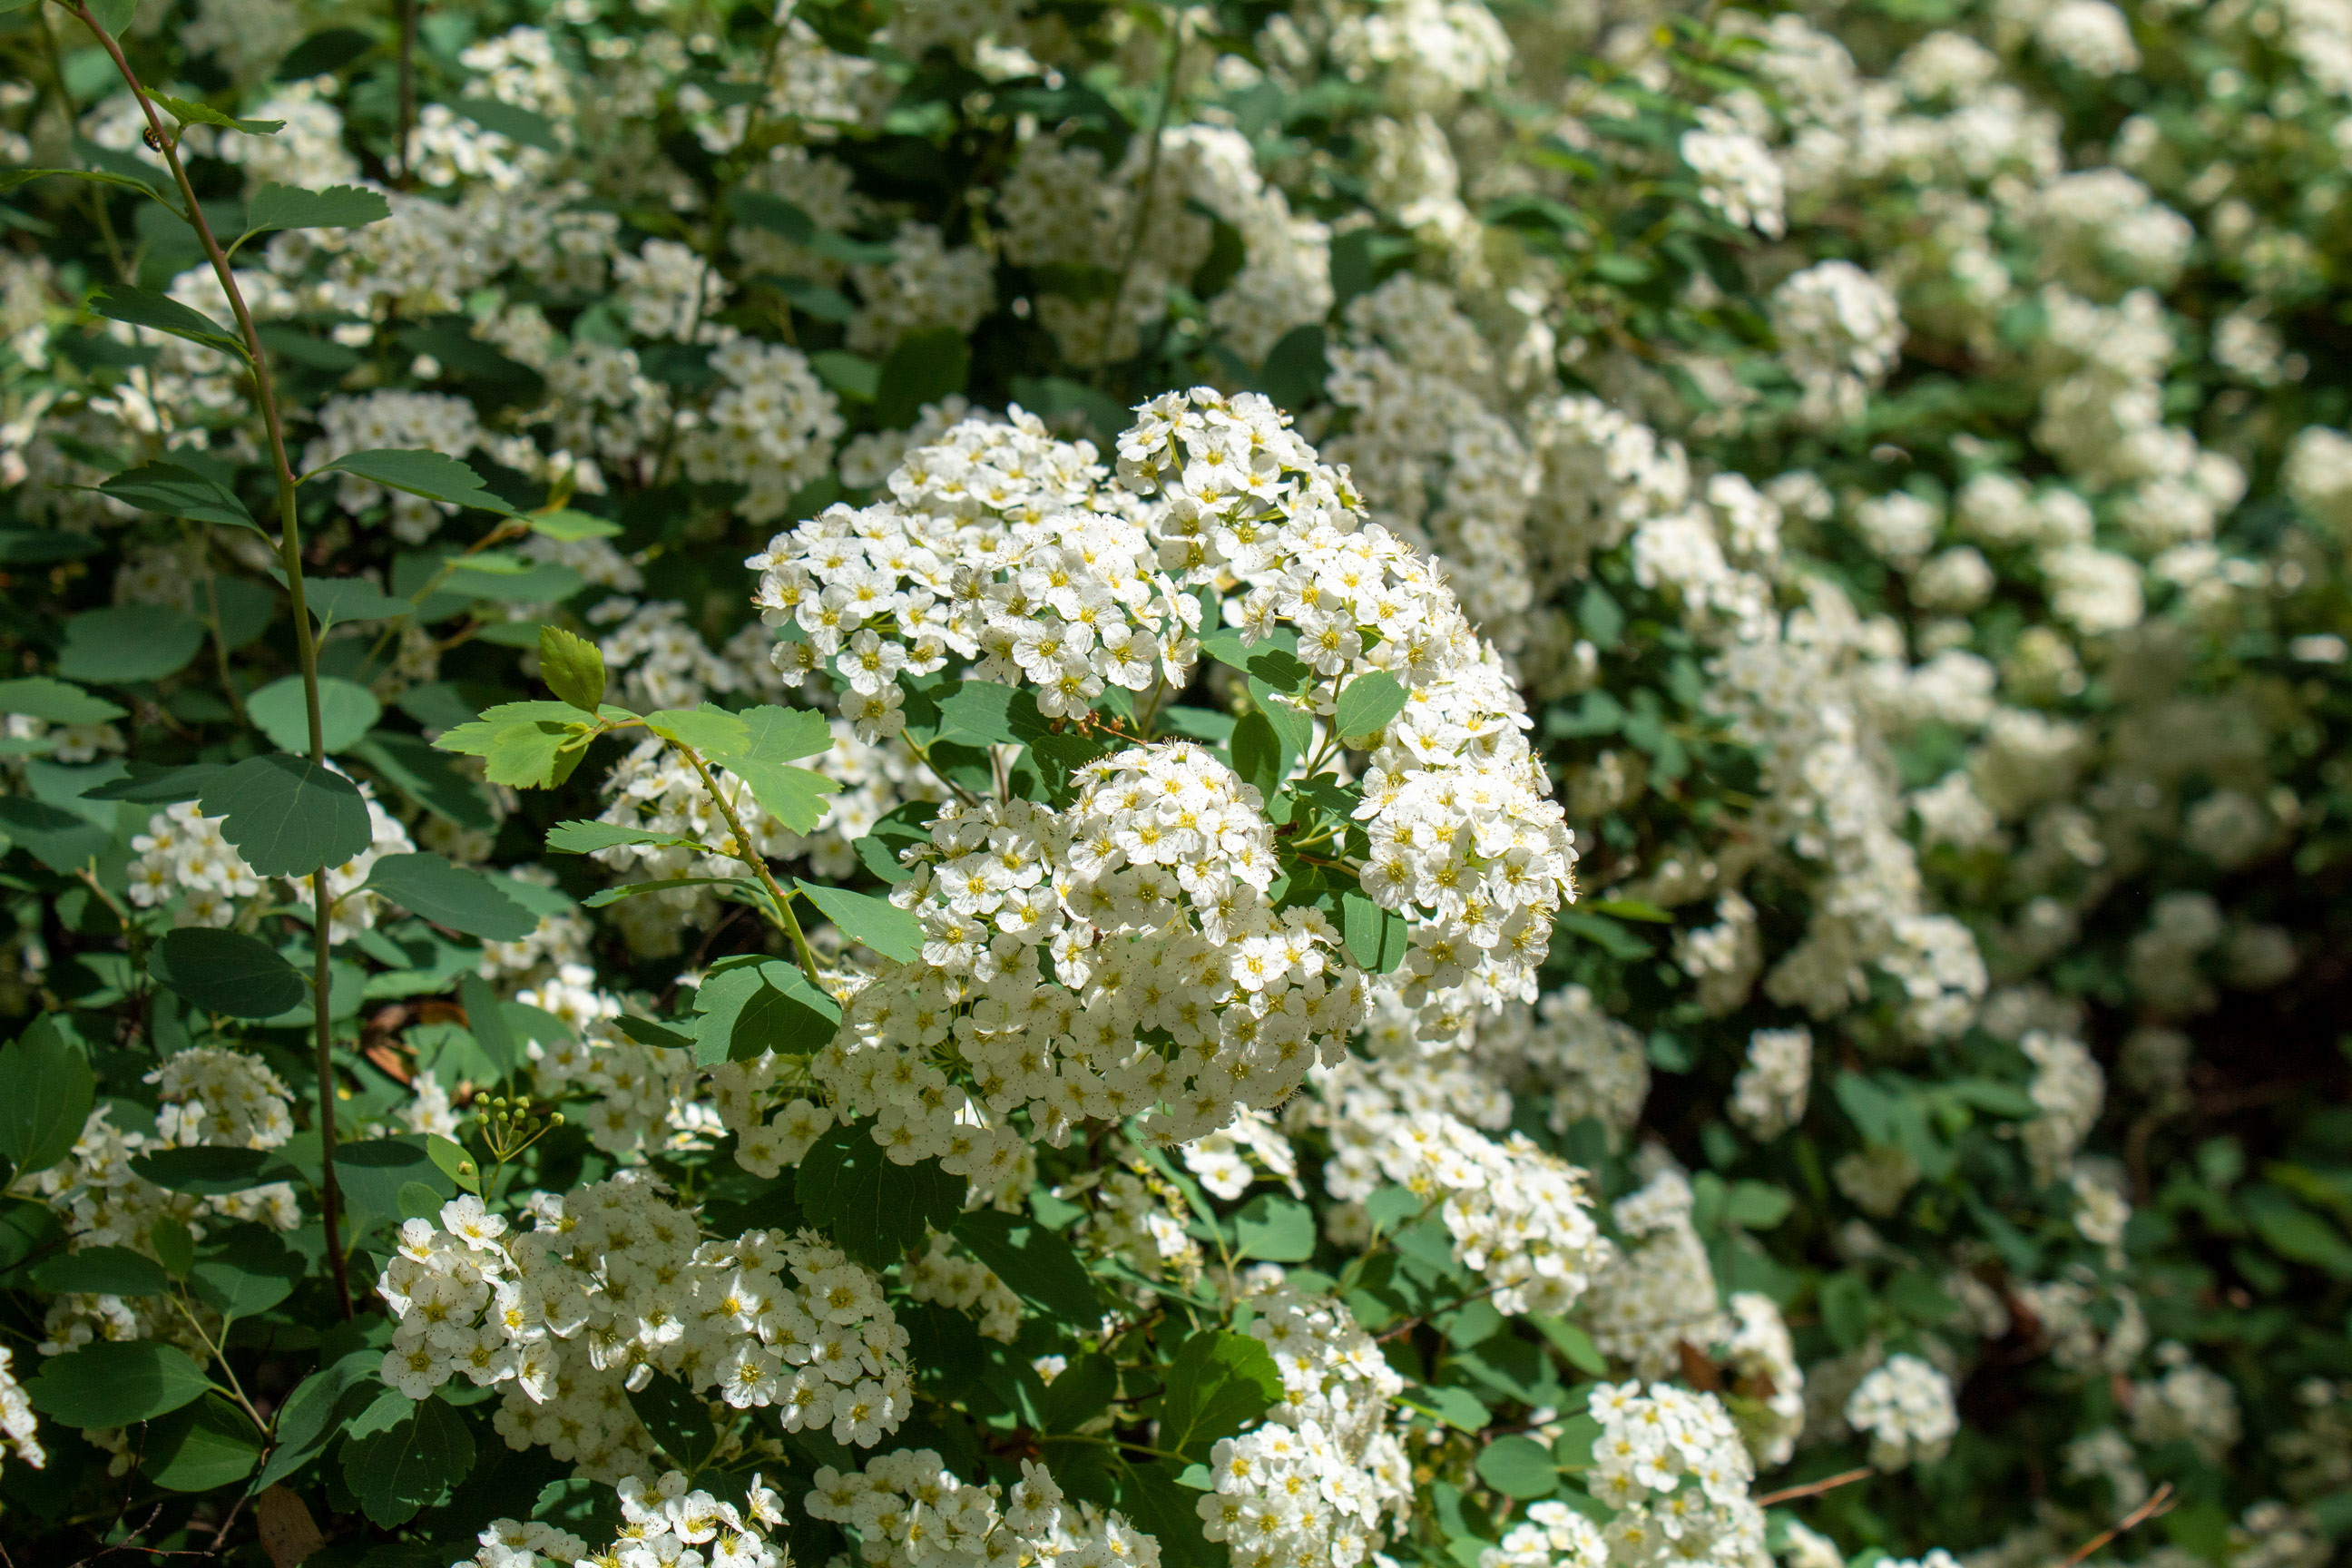 Bundles of white flowers on a hedge